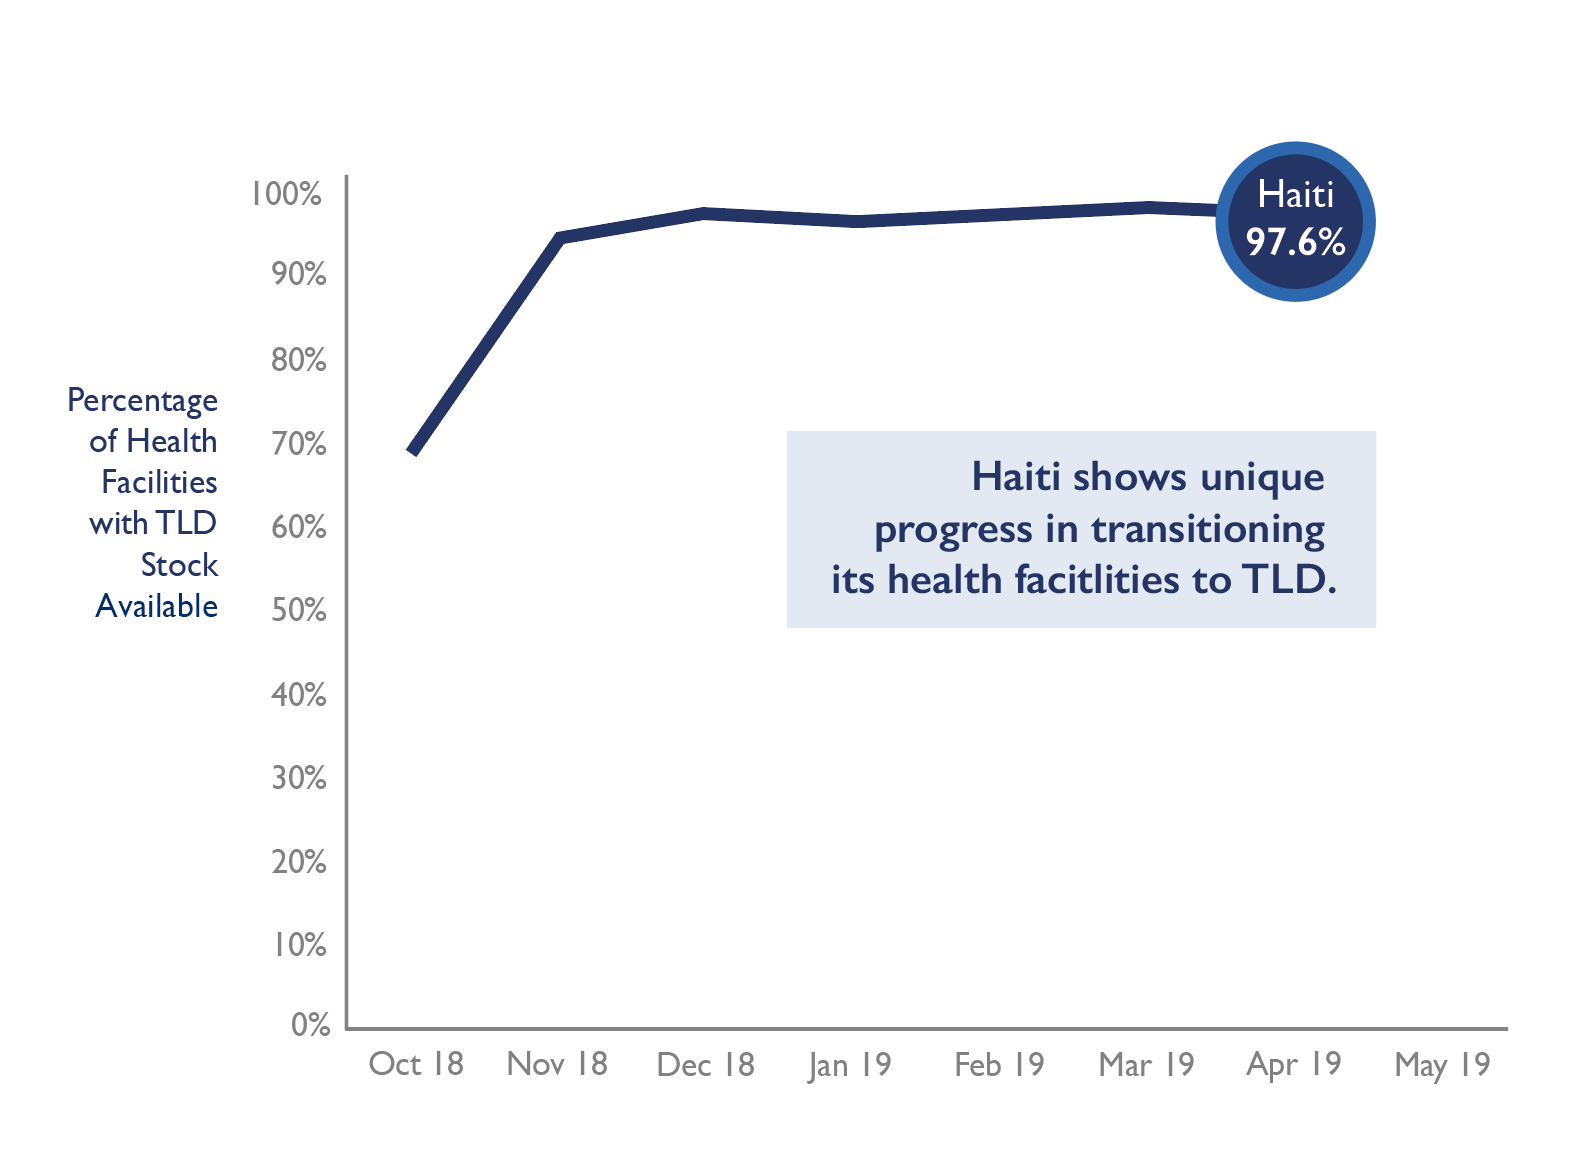 graph shows stock of TLD in Haitian health facilities has increased from October 2018 to April 2019 and is now at 97.6 percent